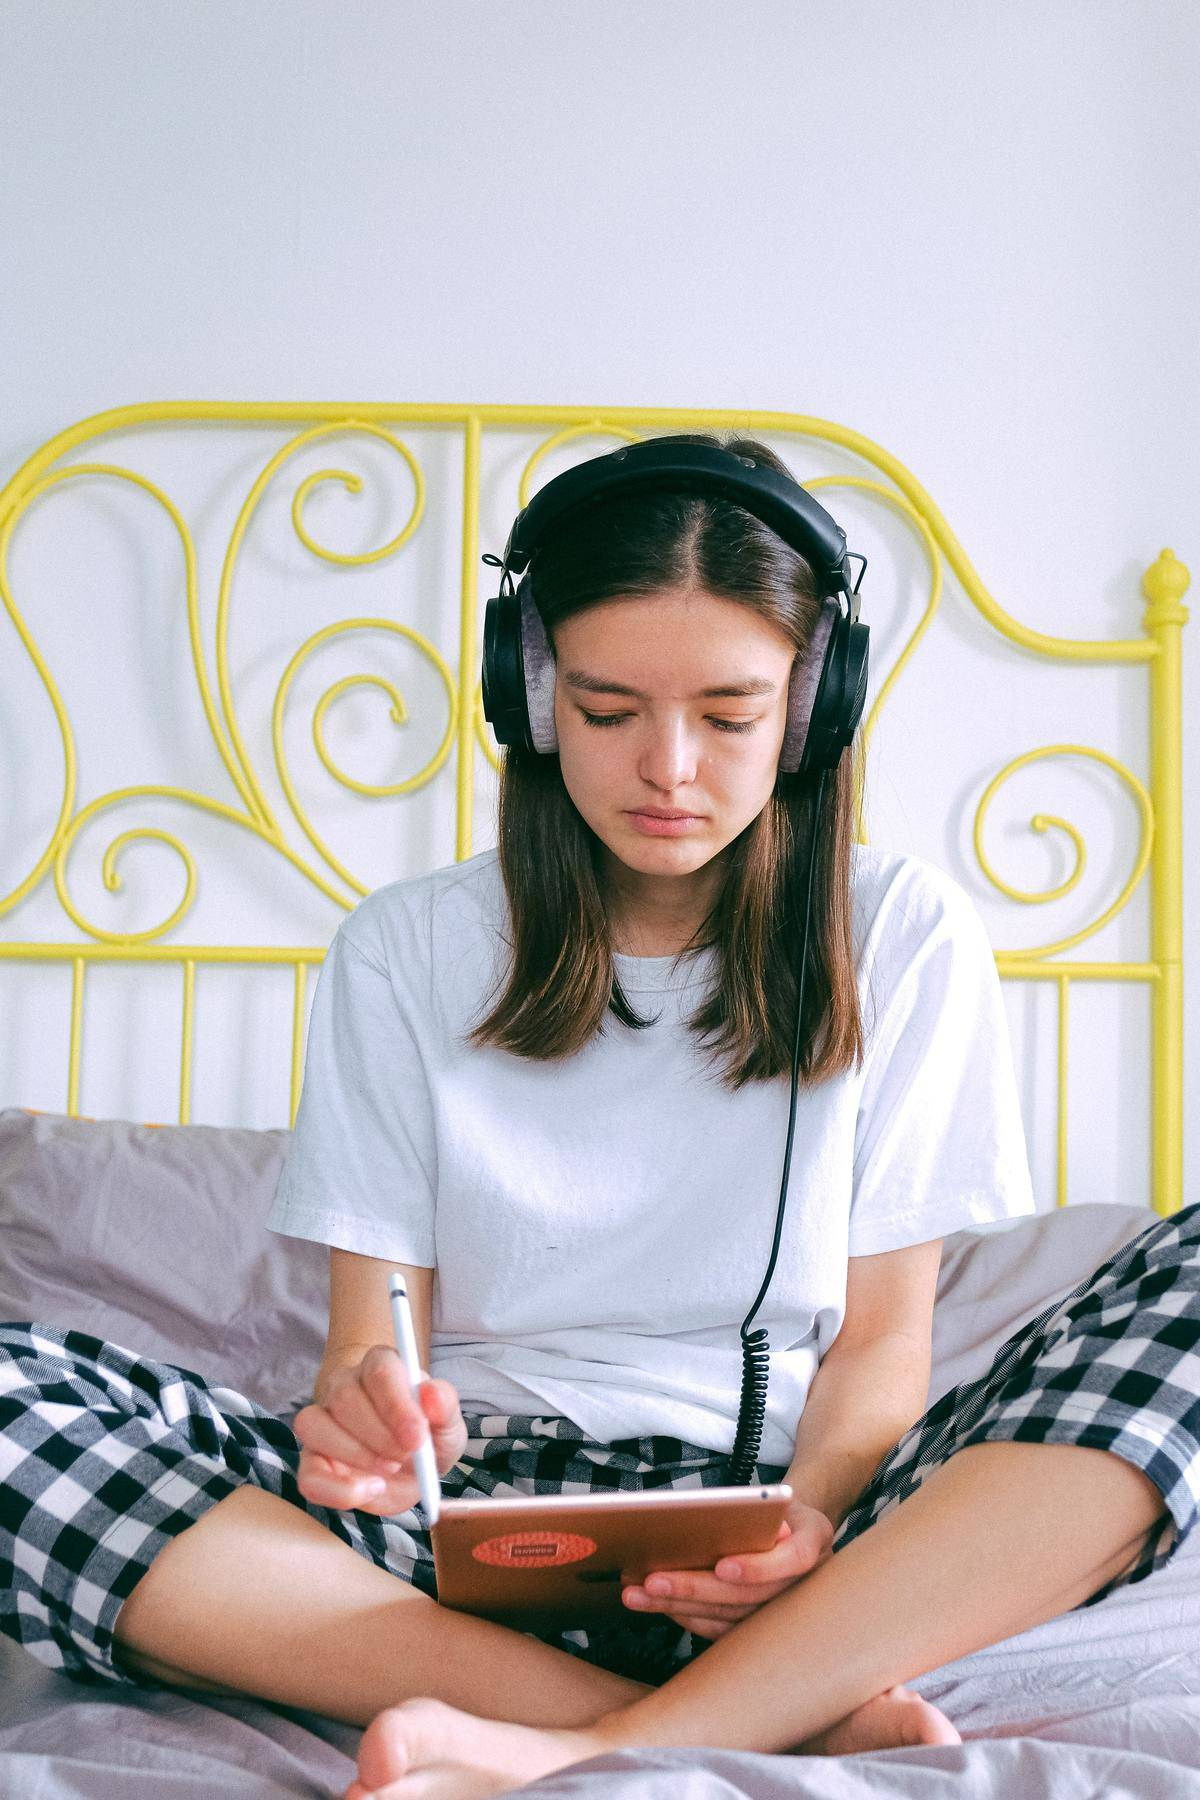 woman with headphones on sitting on a bed, working on an iPad